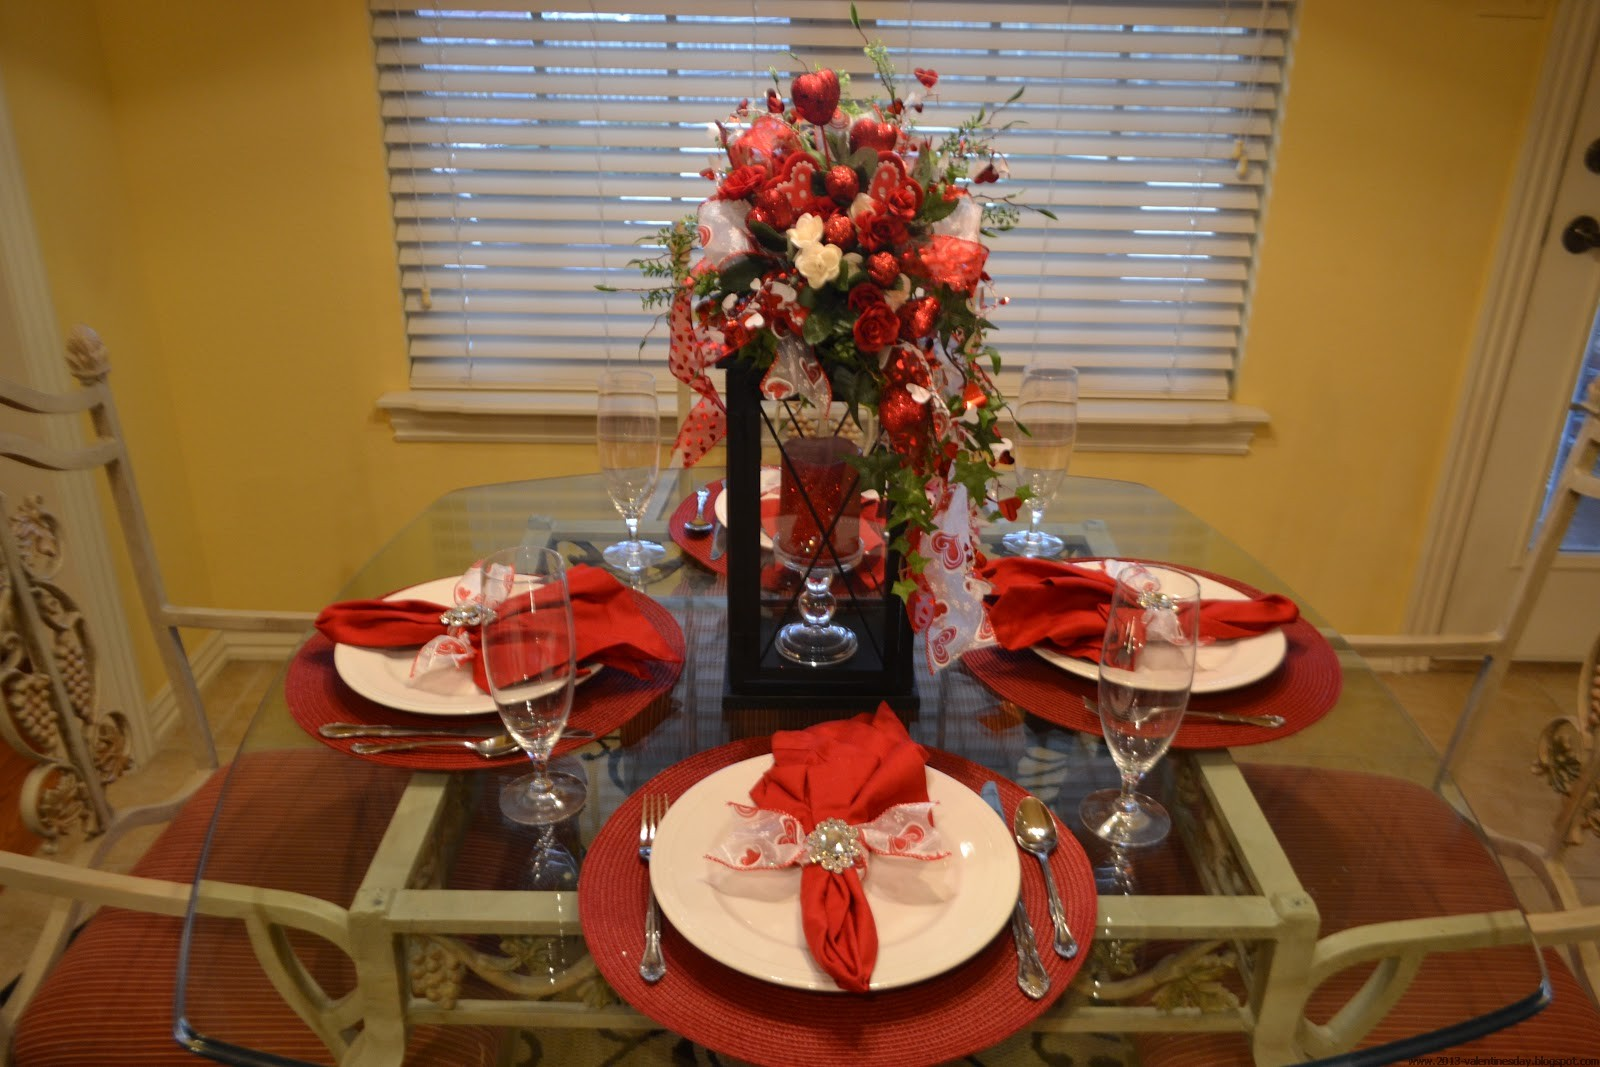 Dining table mats ideas - Glass Dining Table Red Table Mat White Ceramic Plate Painted Wooden Armchair Red Napkin Drinking Glass